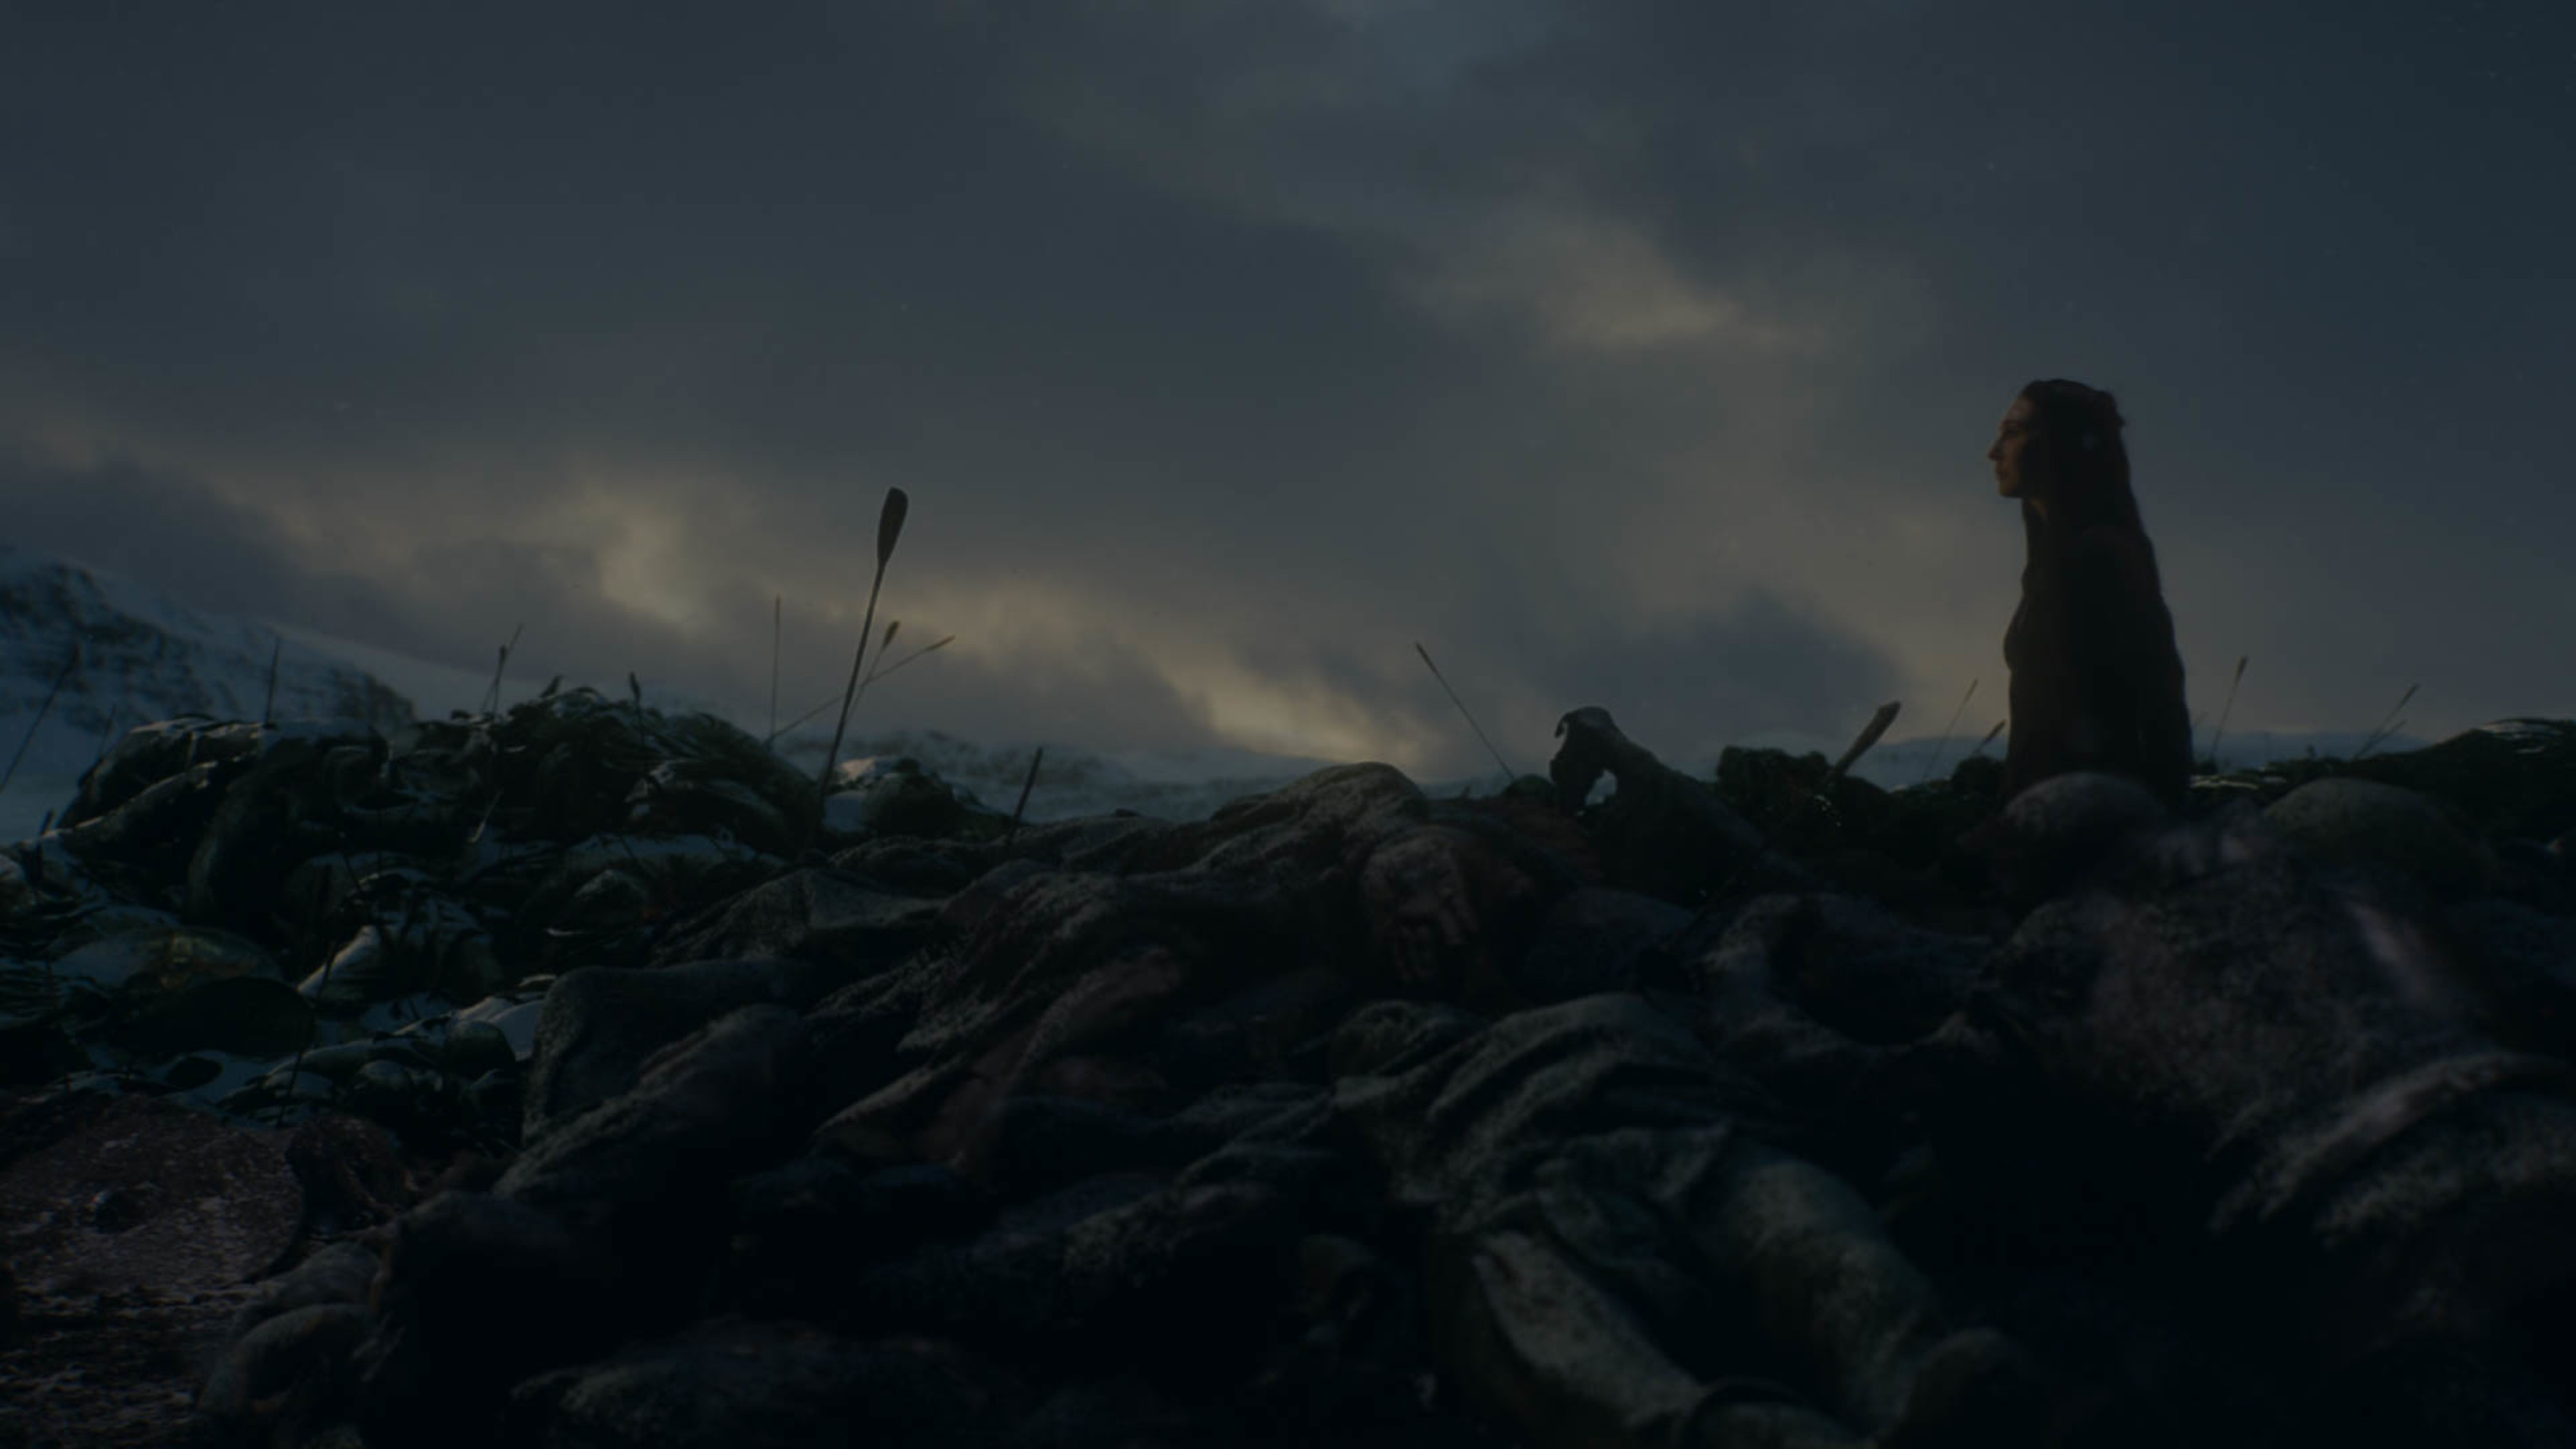 Game of Thrones S08E03: The Long Night - Resumen y comentarios 8